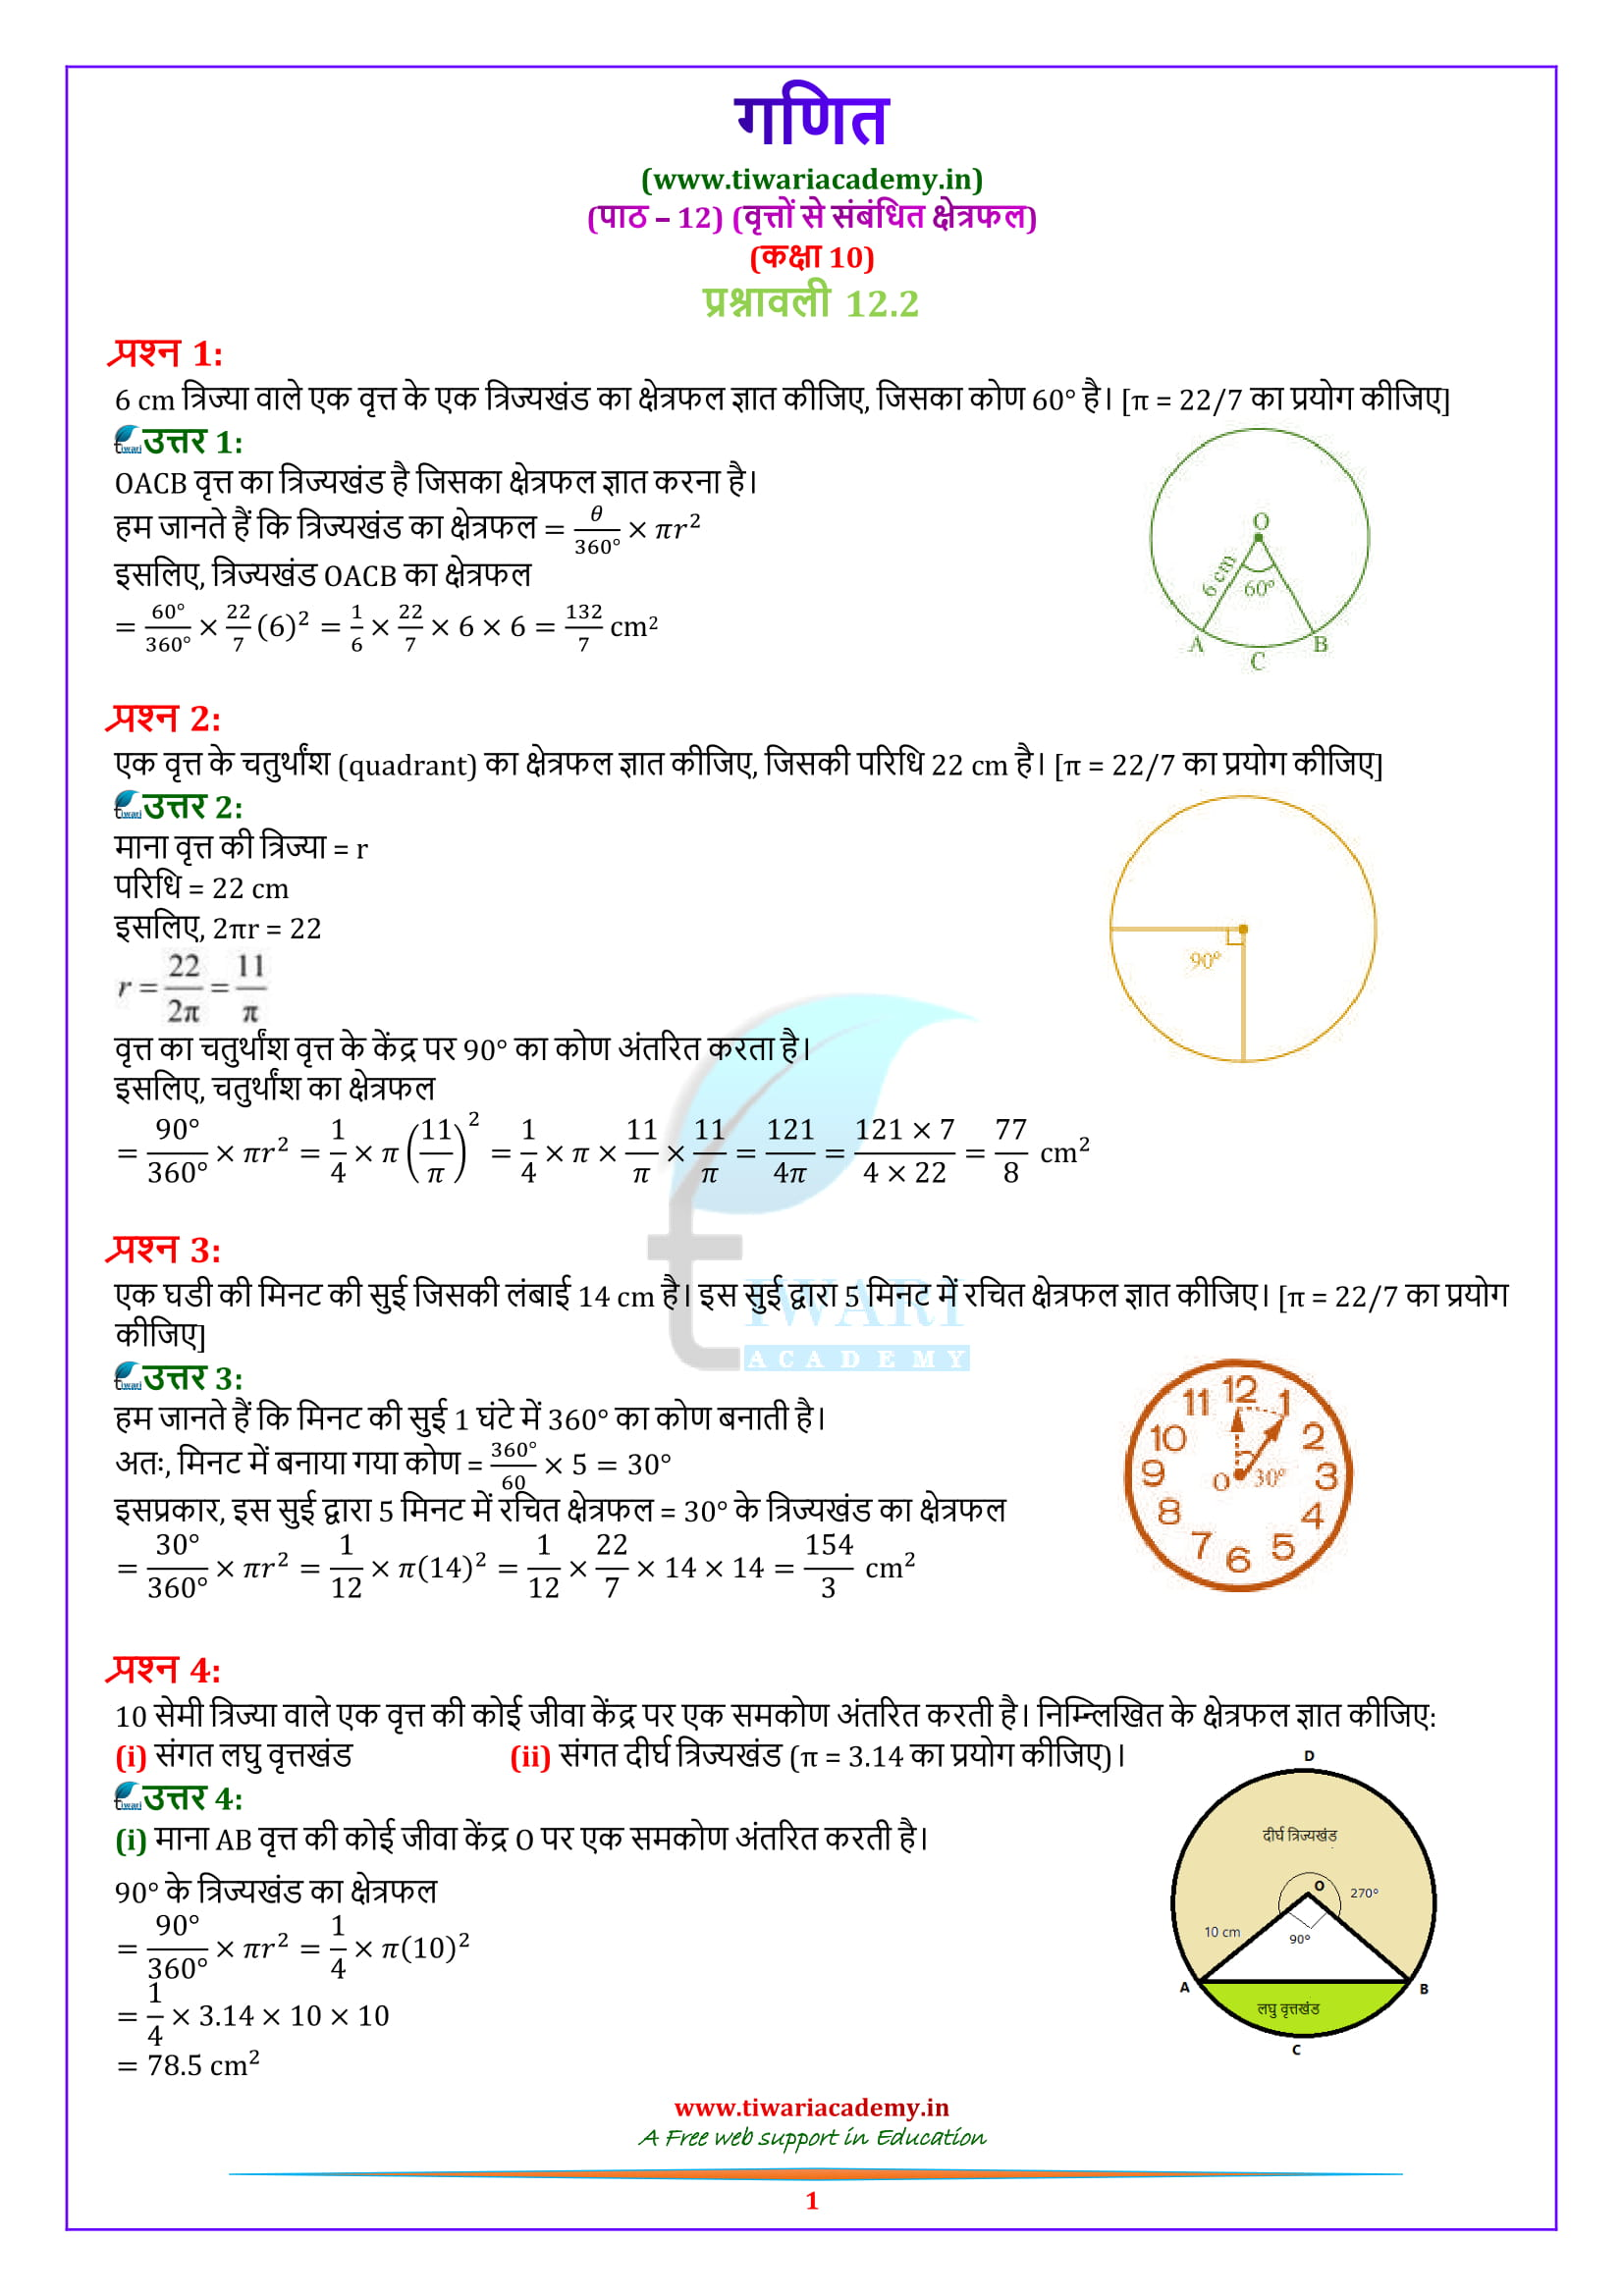 Class 10 Maths Exercise 12.2 Solutions in hindi